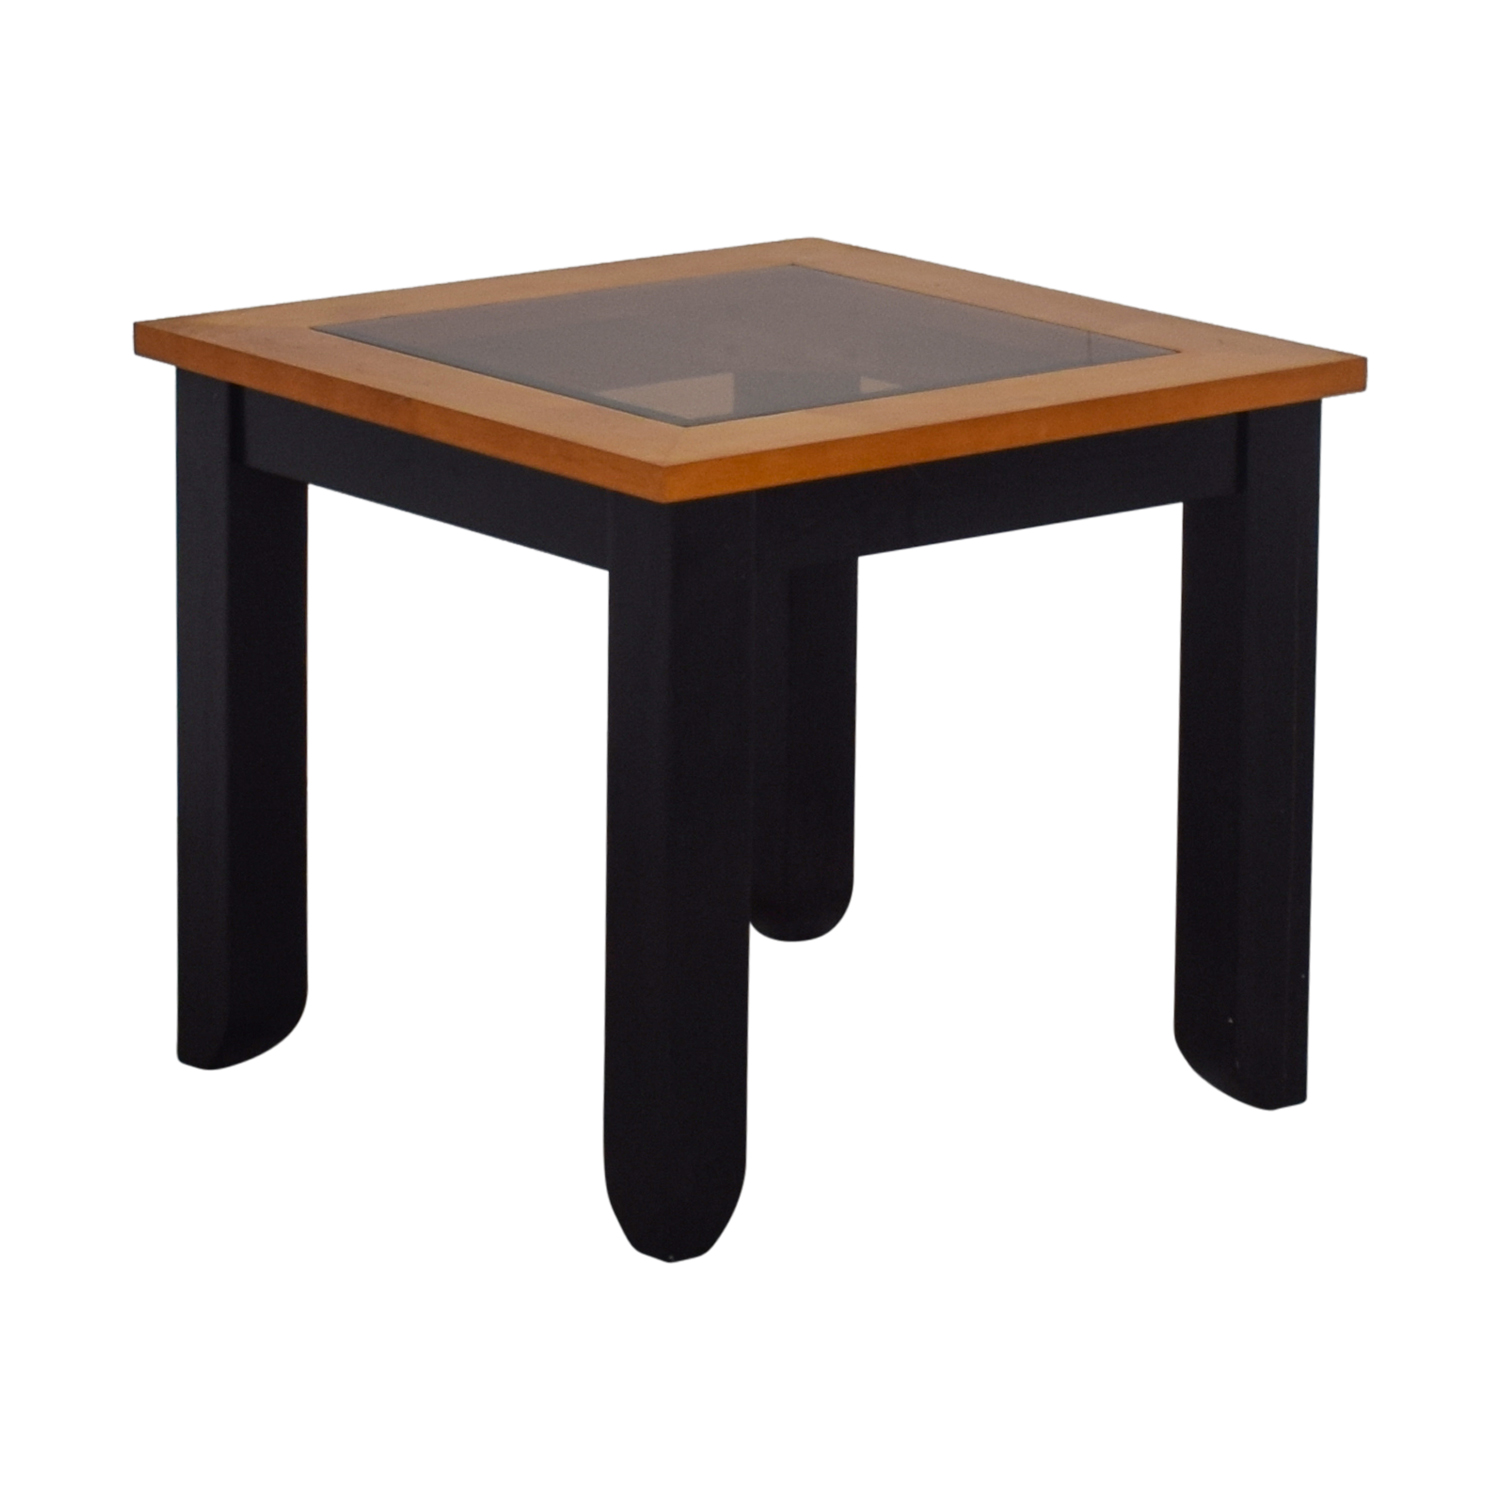 ... Buy Smoke Colored Glass And Wood End Table ...